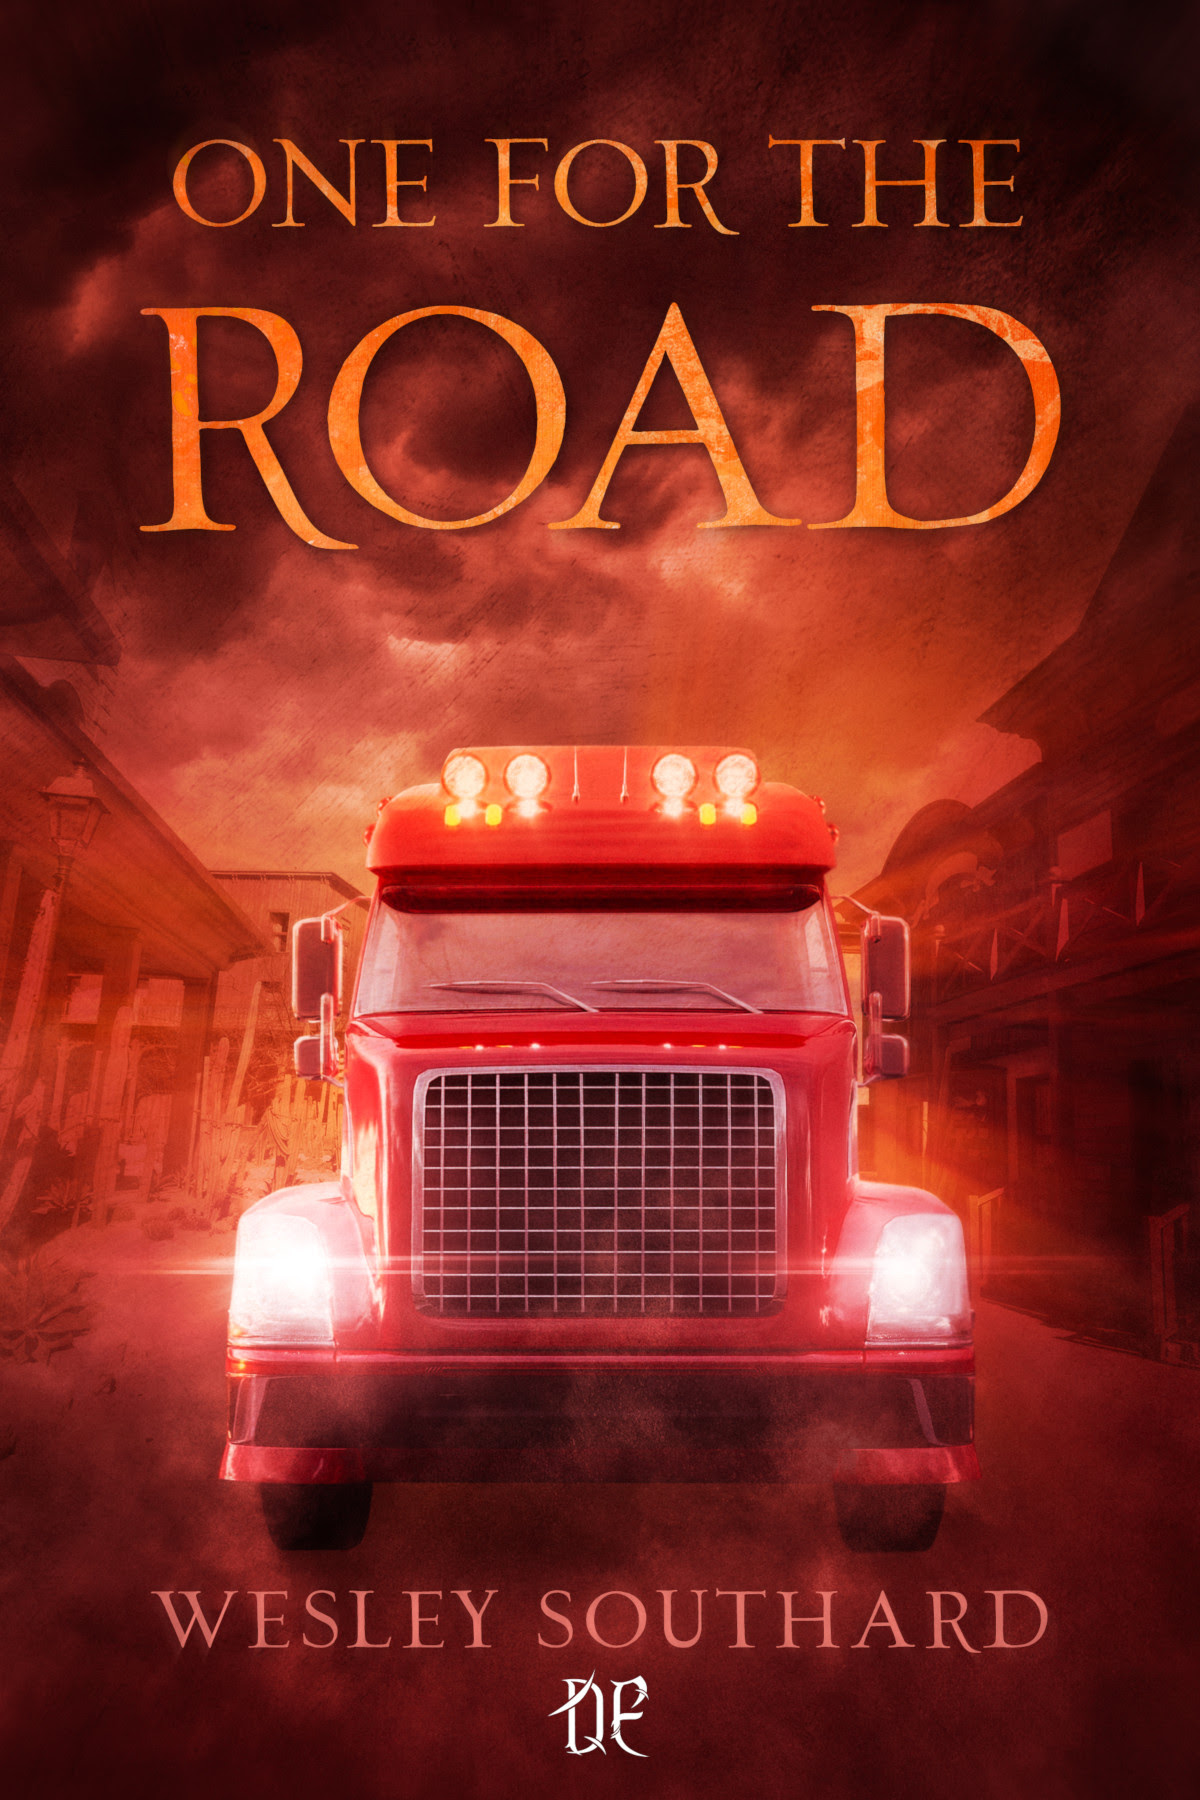 One for the road di Wesley Southard